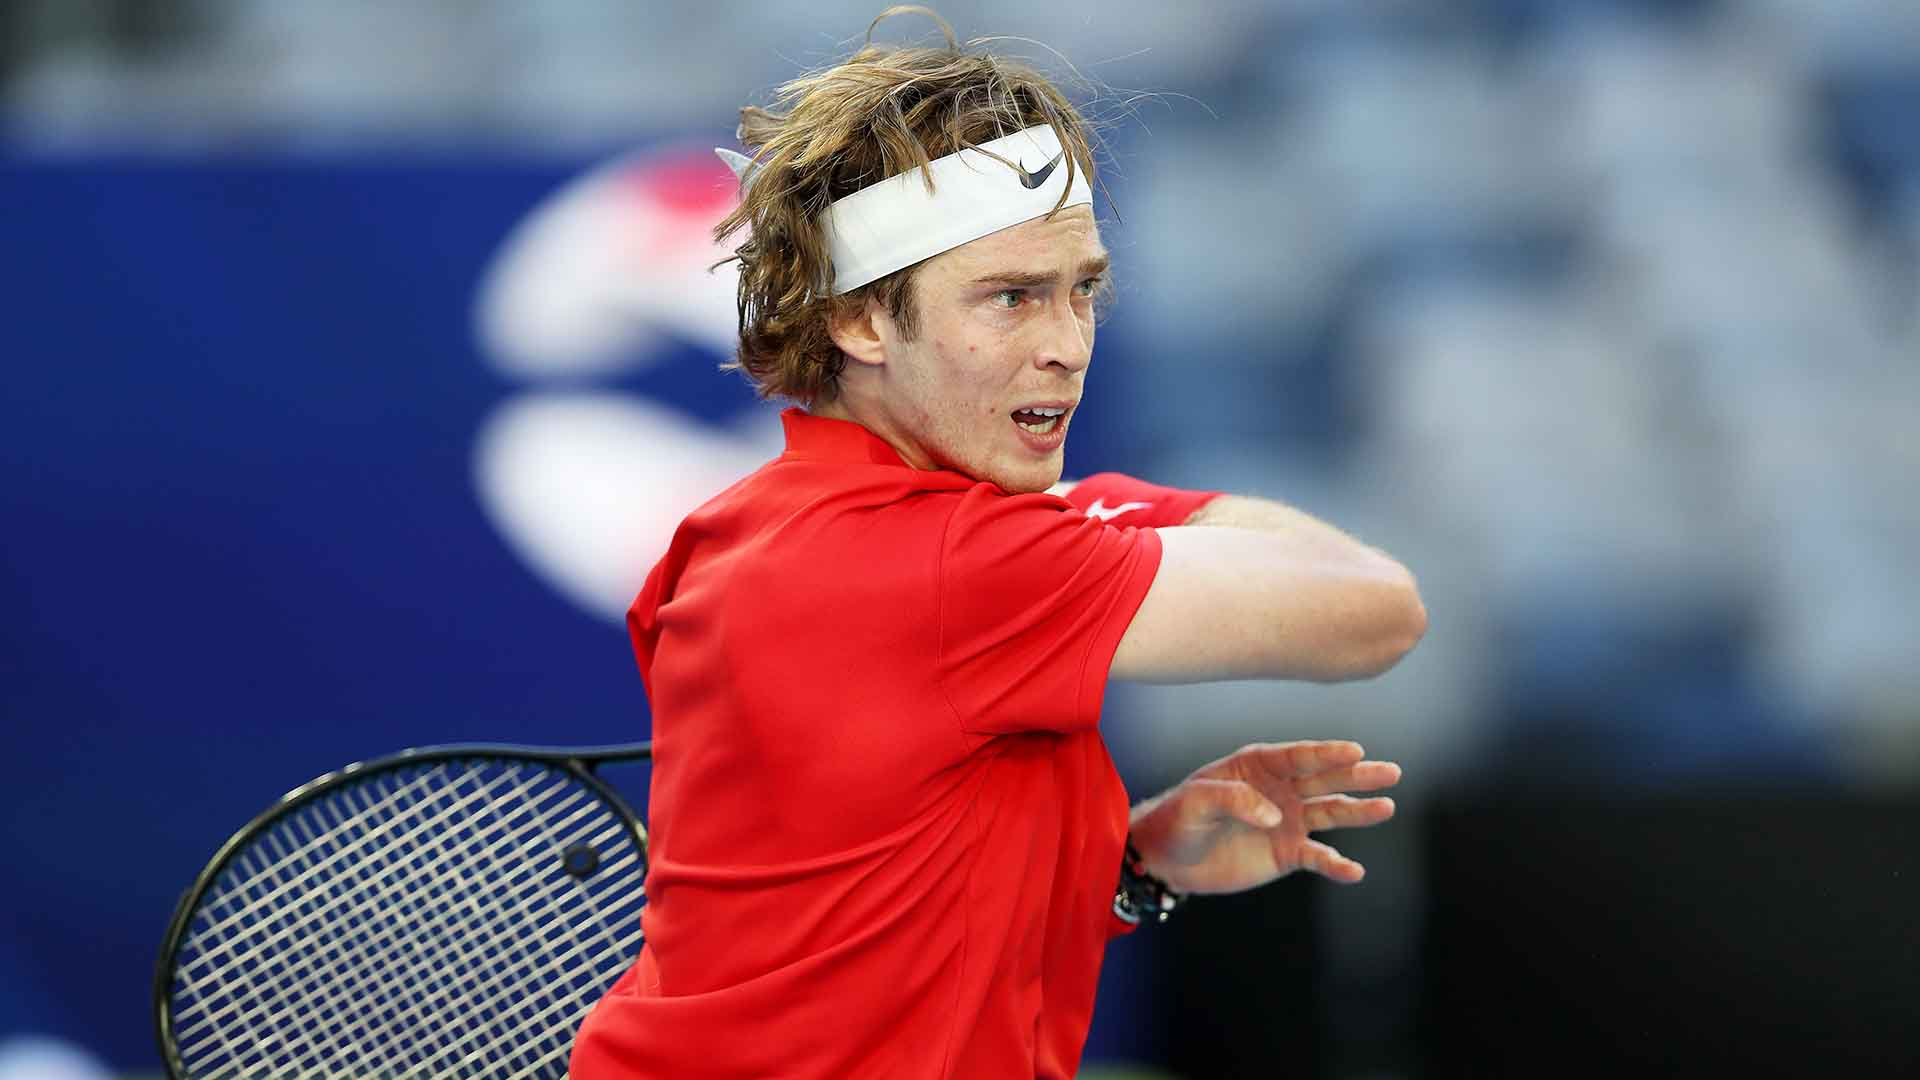 MELBOURNE, AUSTRALIA - FEBRUARY 03: Andrey Rublev of Russia plays a forehand in his Group D singles match against Yoshihito Nishioka of Japan during day two of the 2021 ATP Cup at Rod Laver Arena on February 03, 2021 in Melbourne, Australia. (Photo by Jack Thomas/Getty Images)